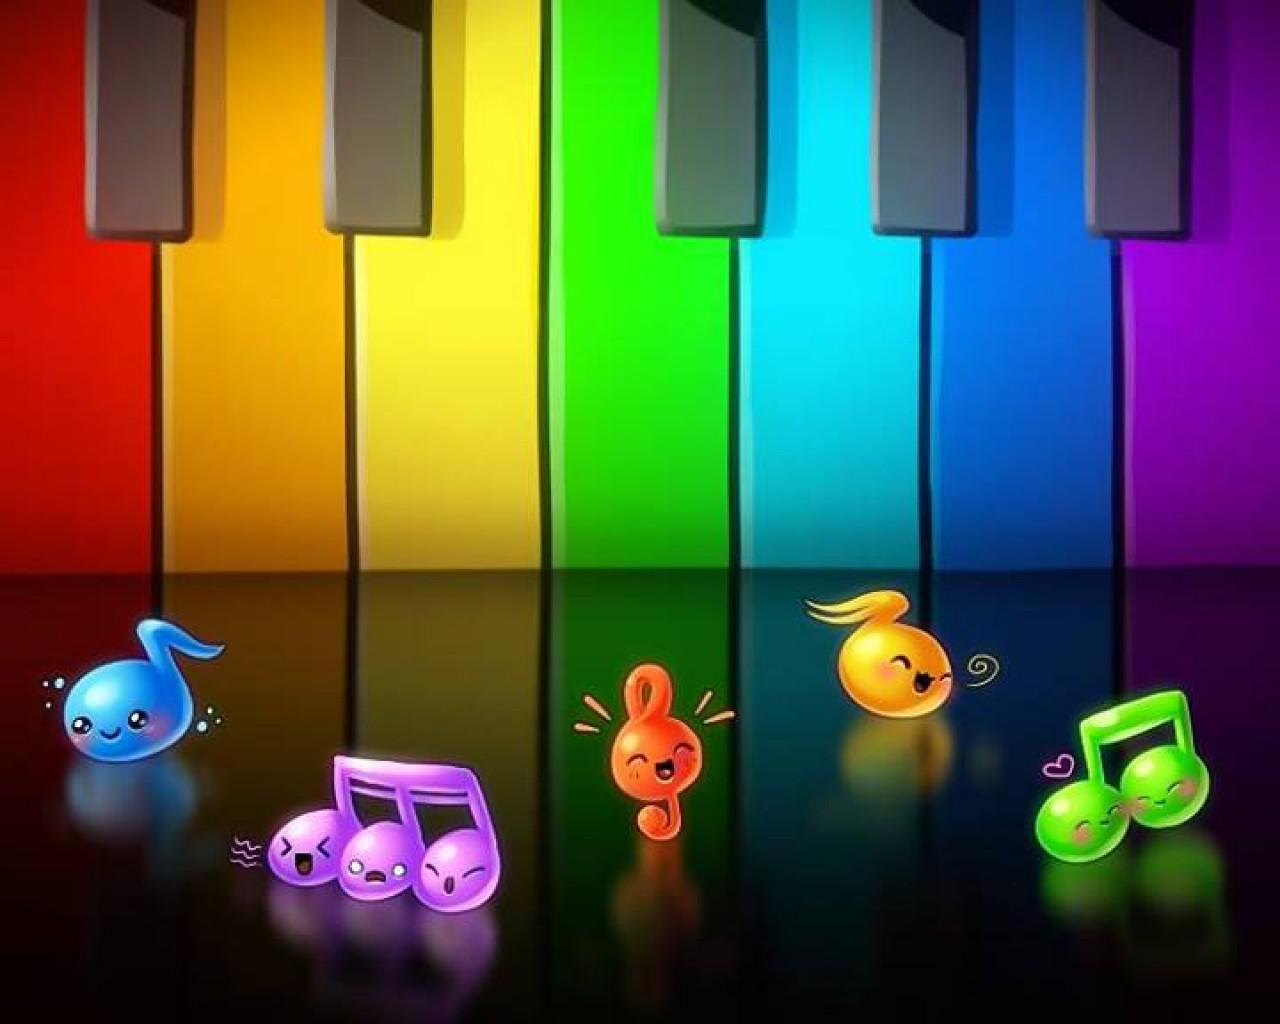 Cute Music Note Wallpaper - WallpaperSafari